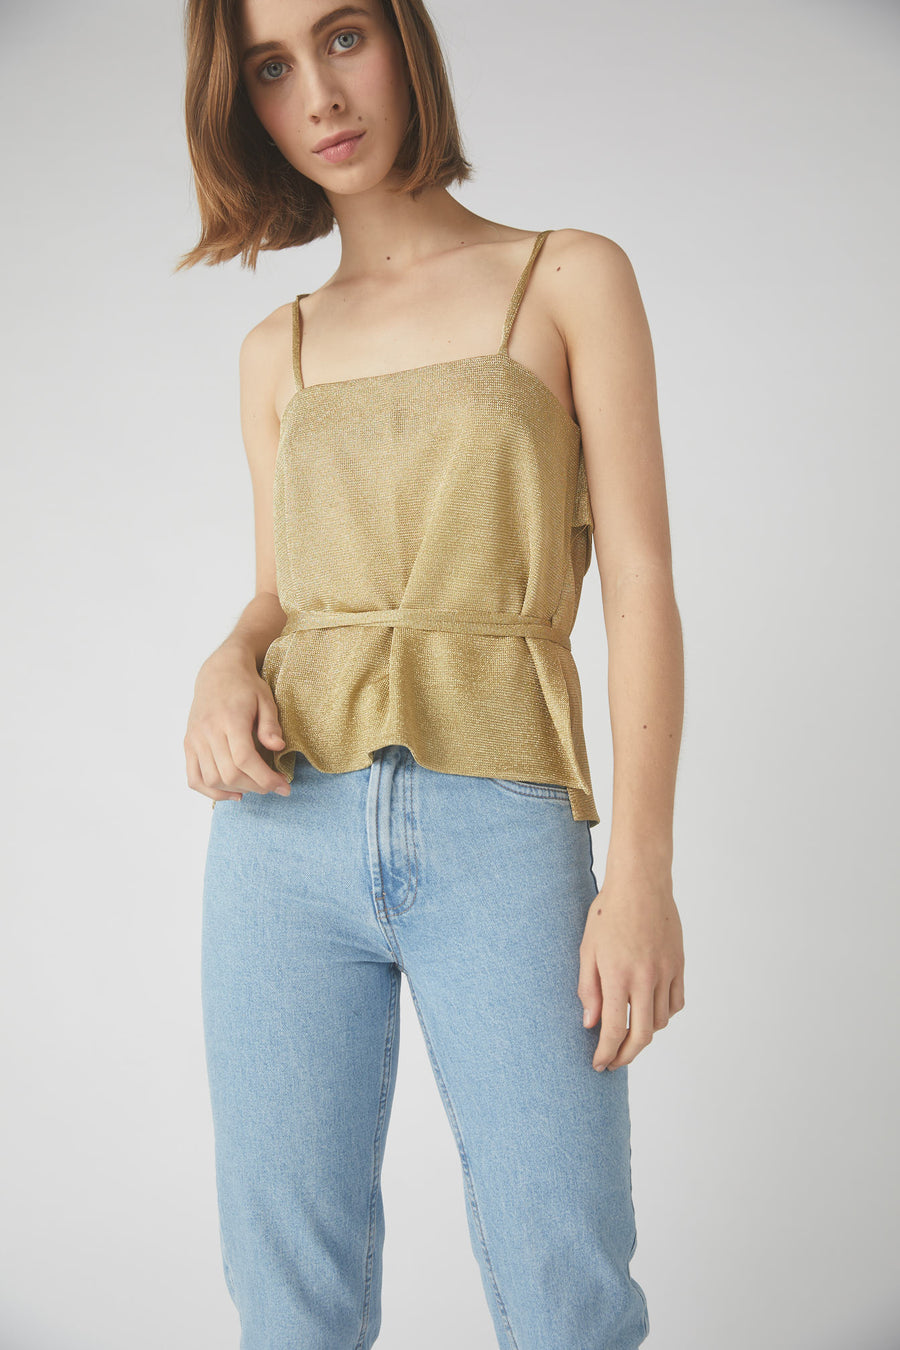 Madaline Metallic Wrap Cami / Gold